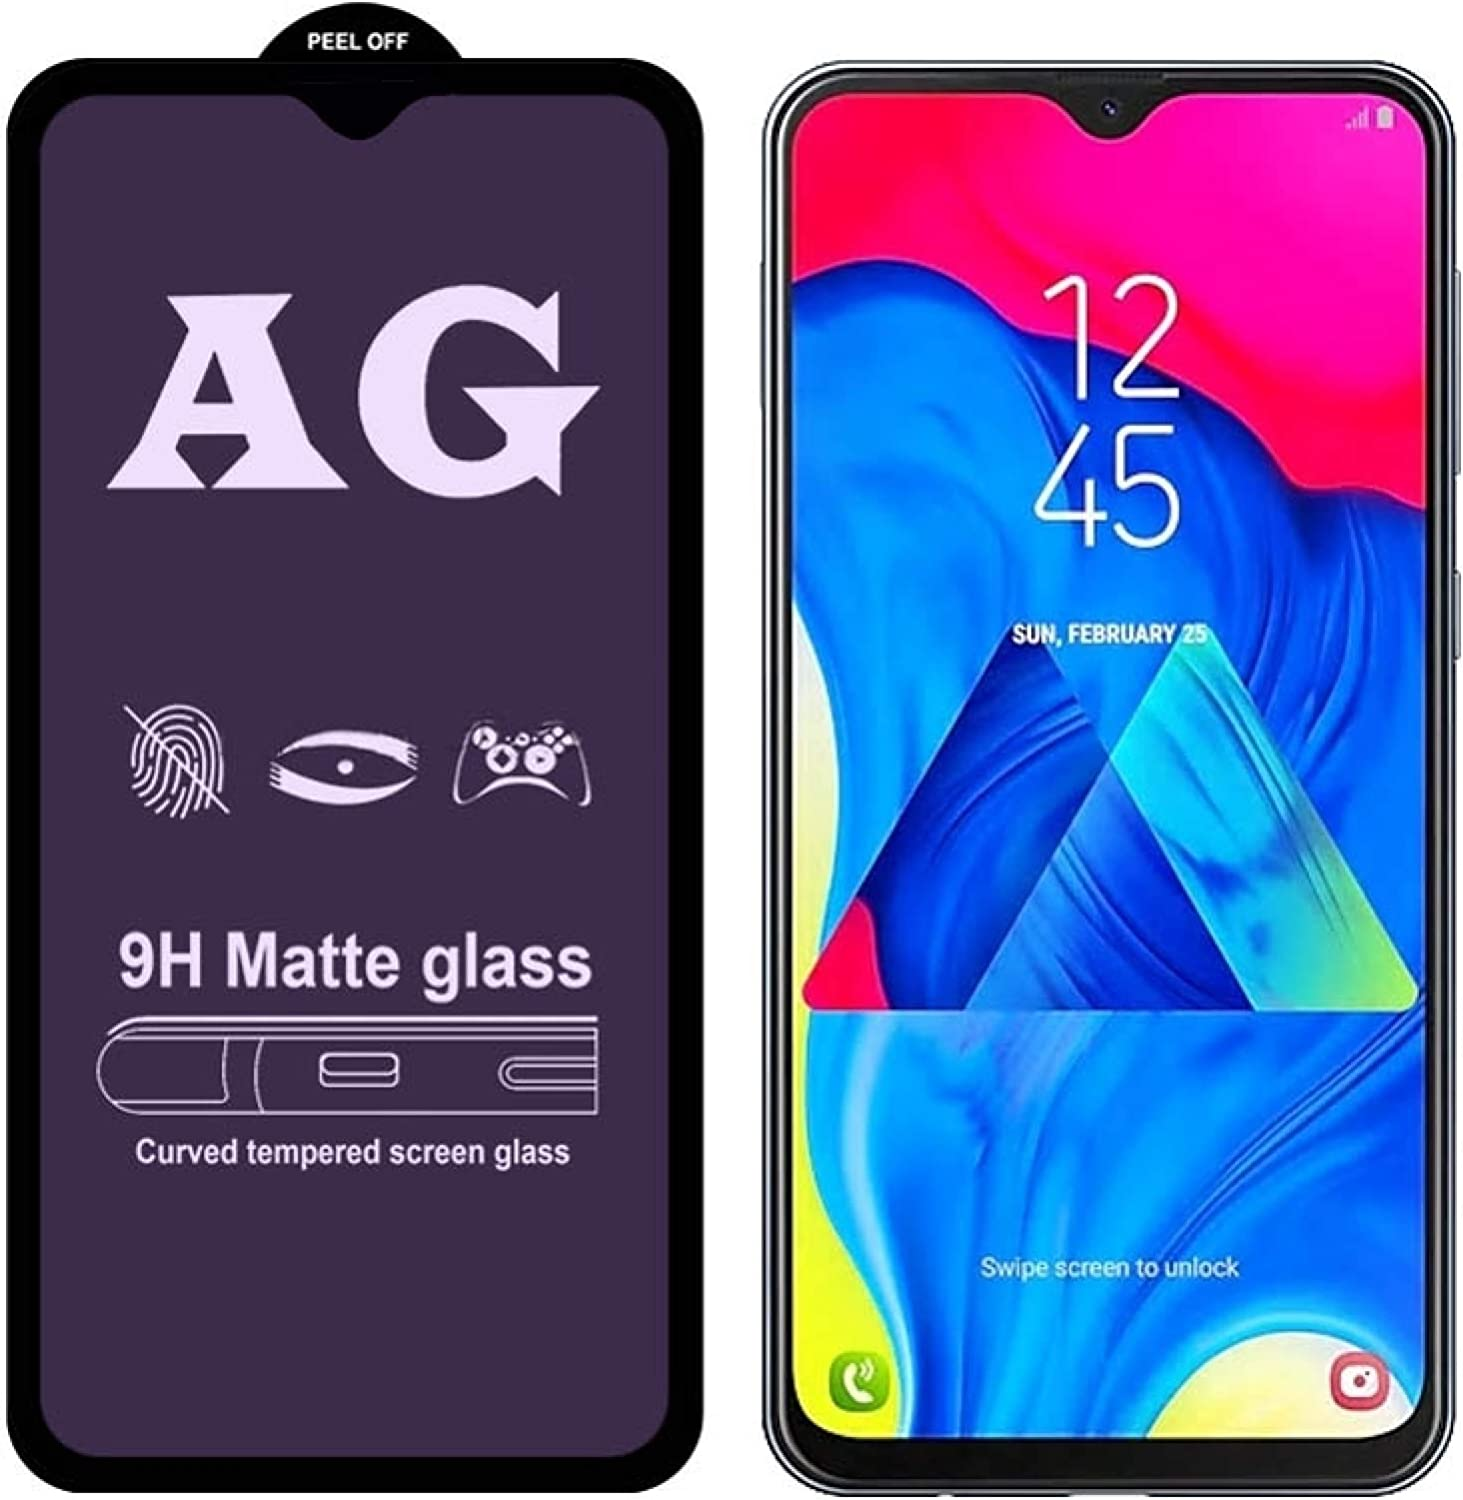 Eryanone Mobile excellence Phone Screen Protectors Blue Max 72% OFF AG Matte Anti Light